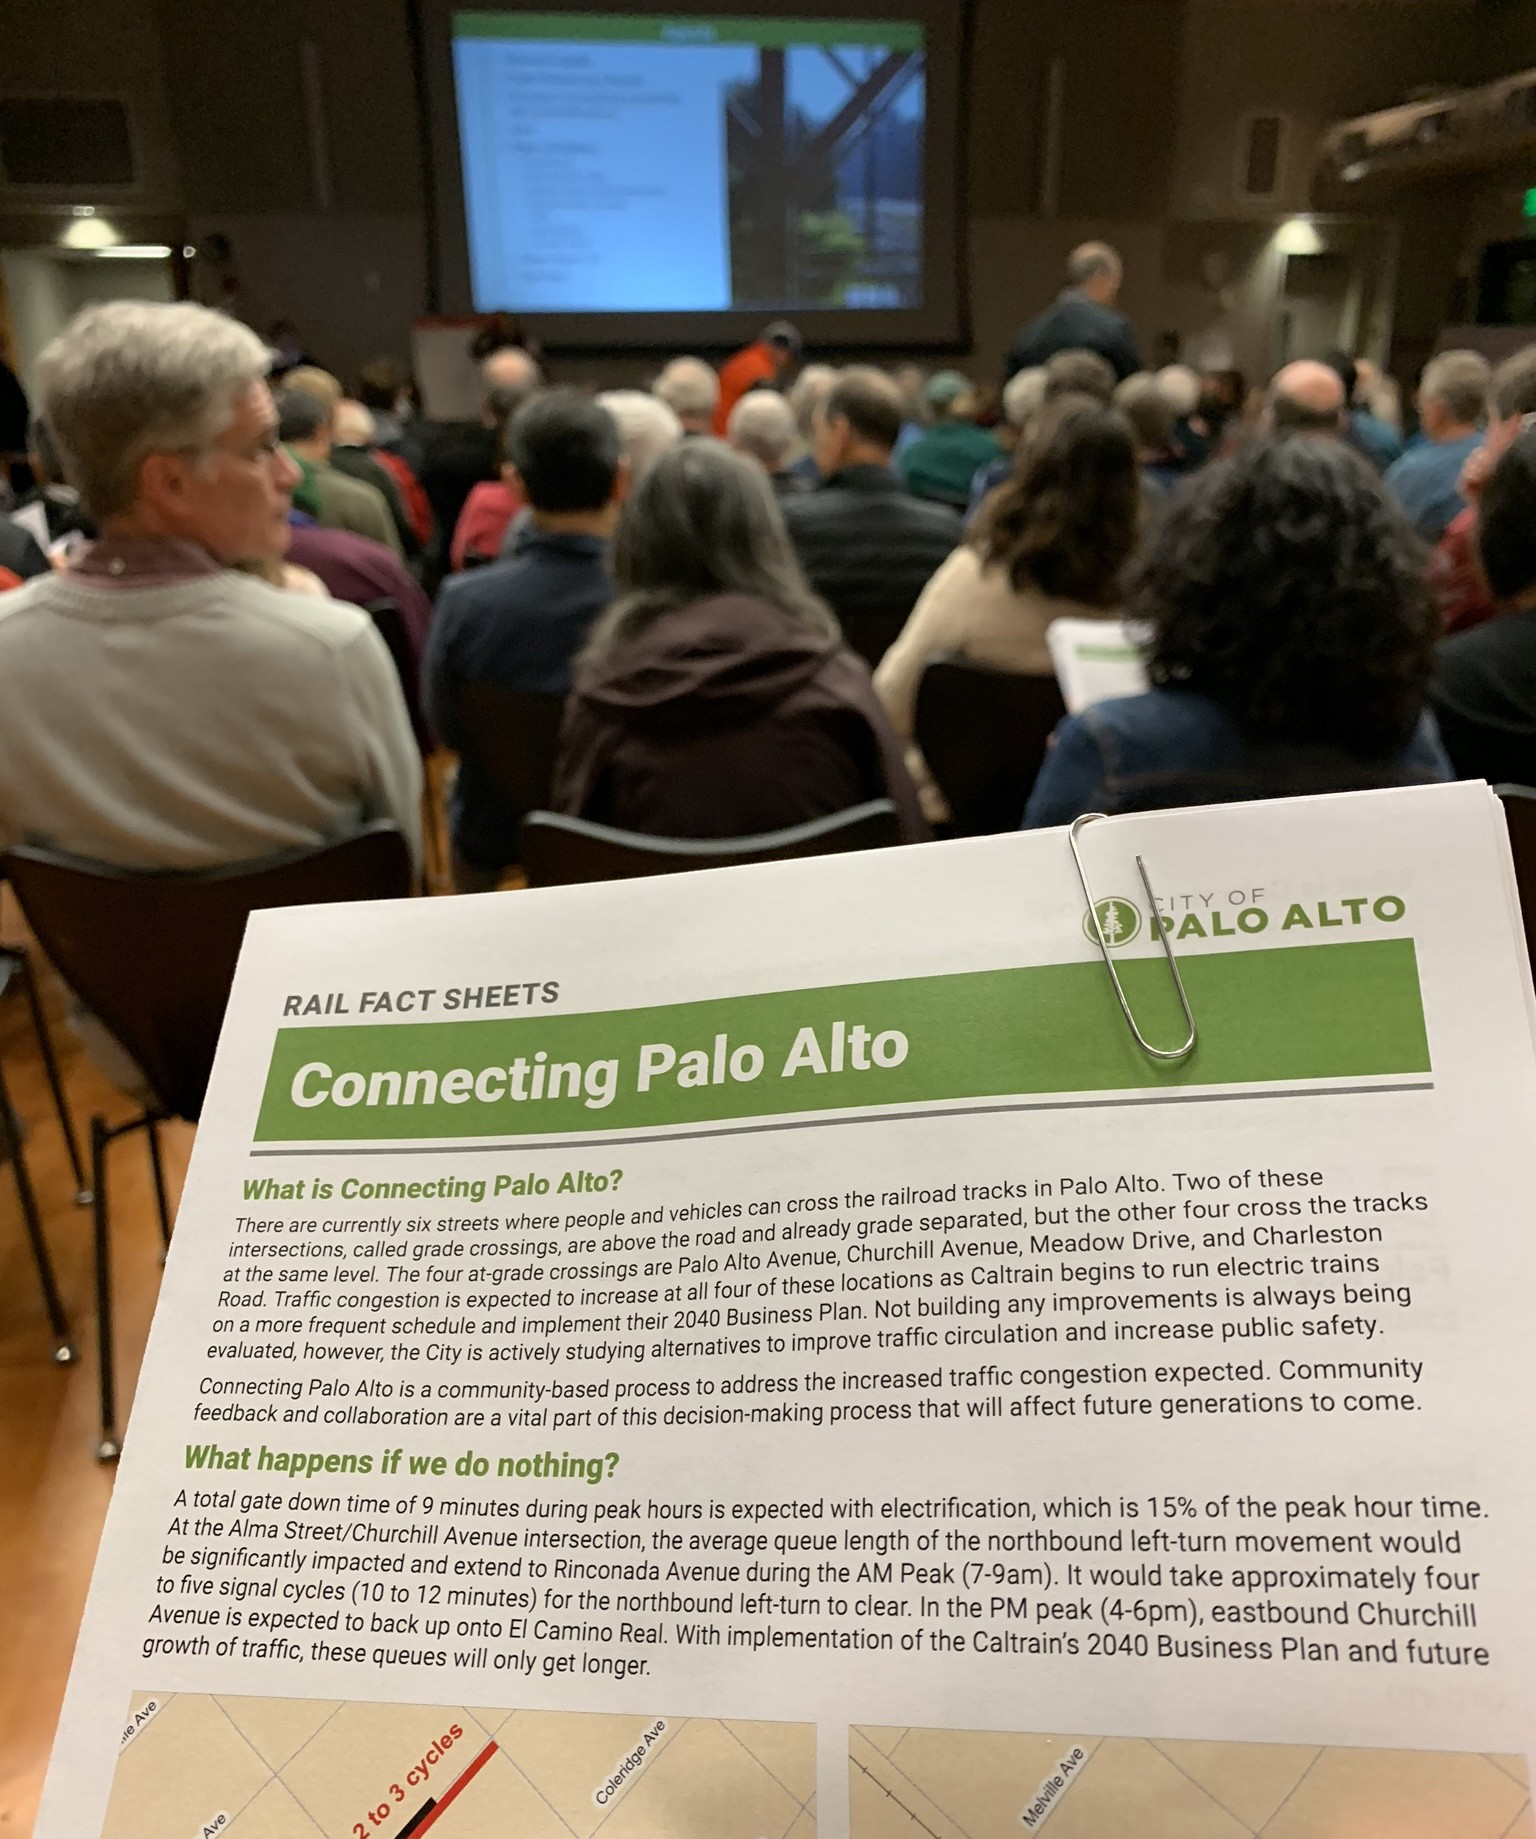 Rail Fact Sheets were presented at the community meeting.